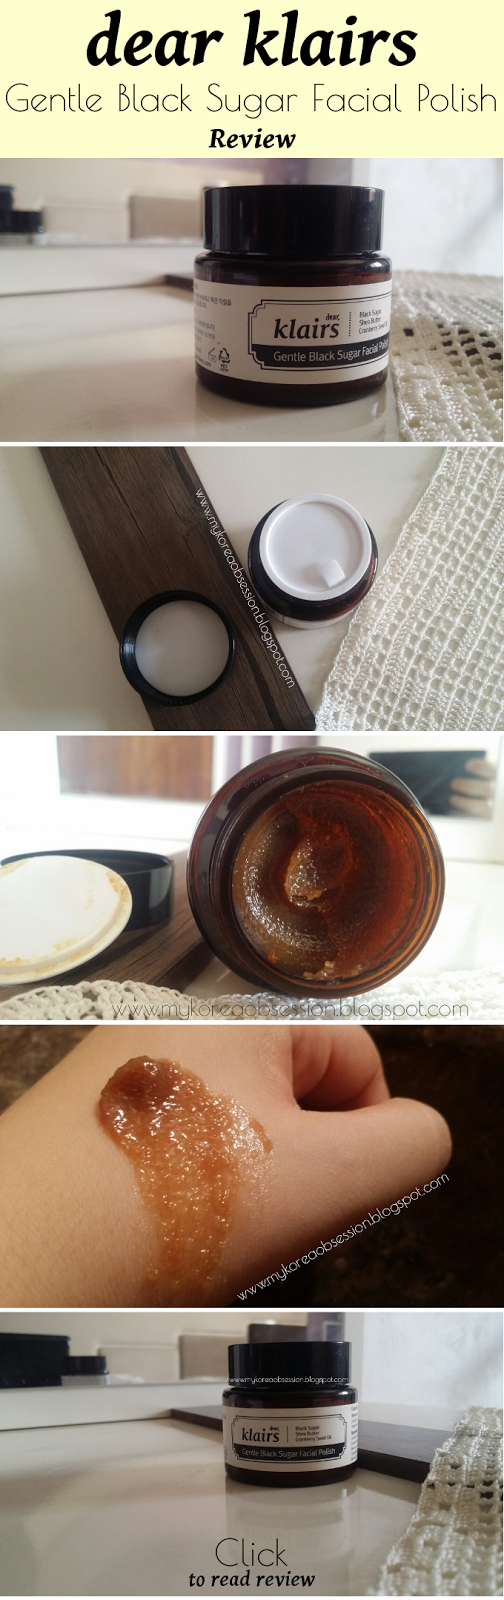 [KLAIRS] Gentle Black Sugar Facial Polish: Review